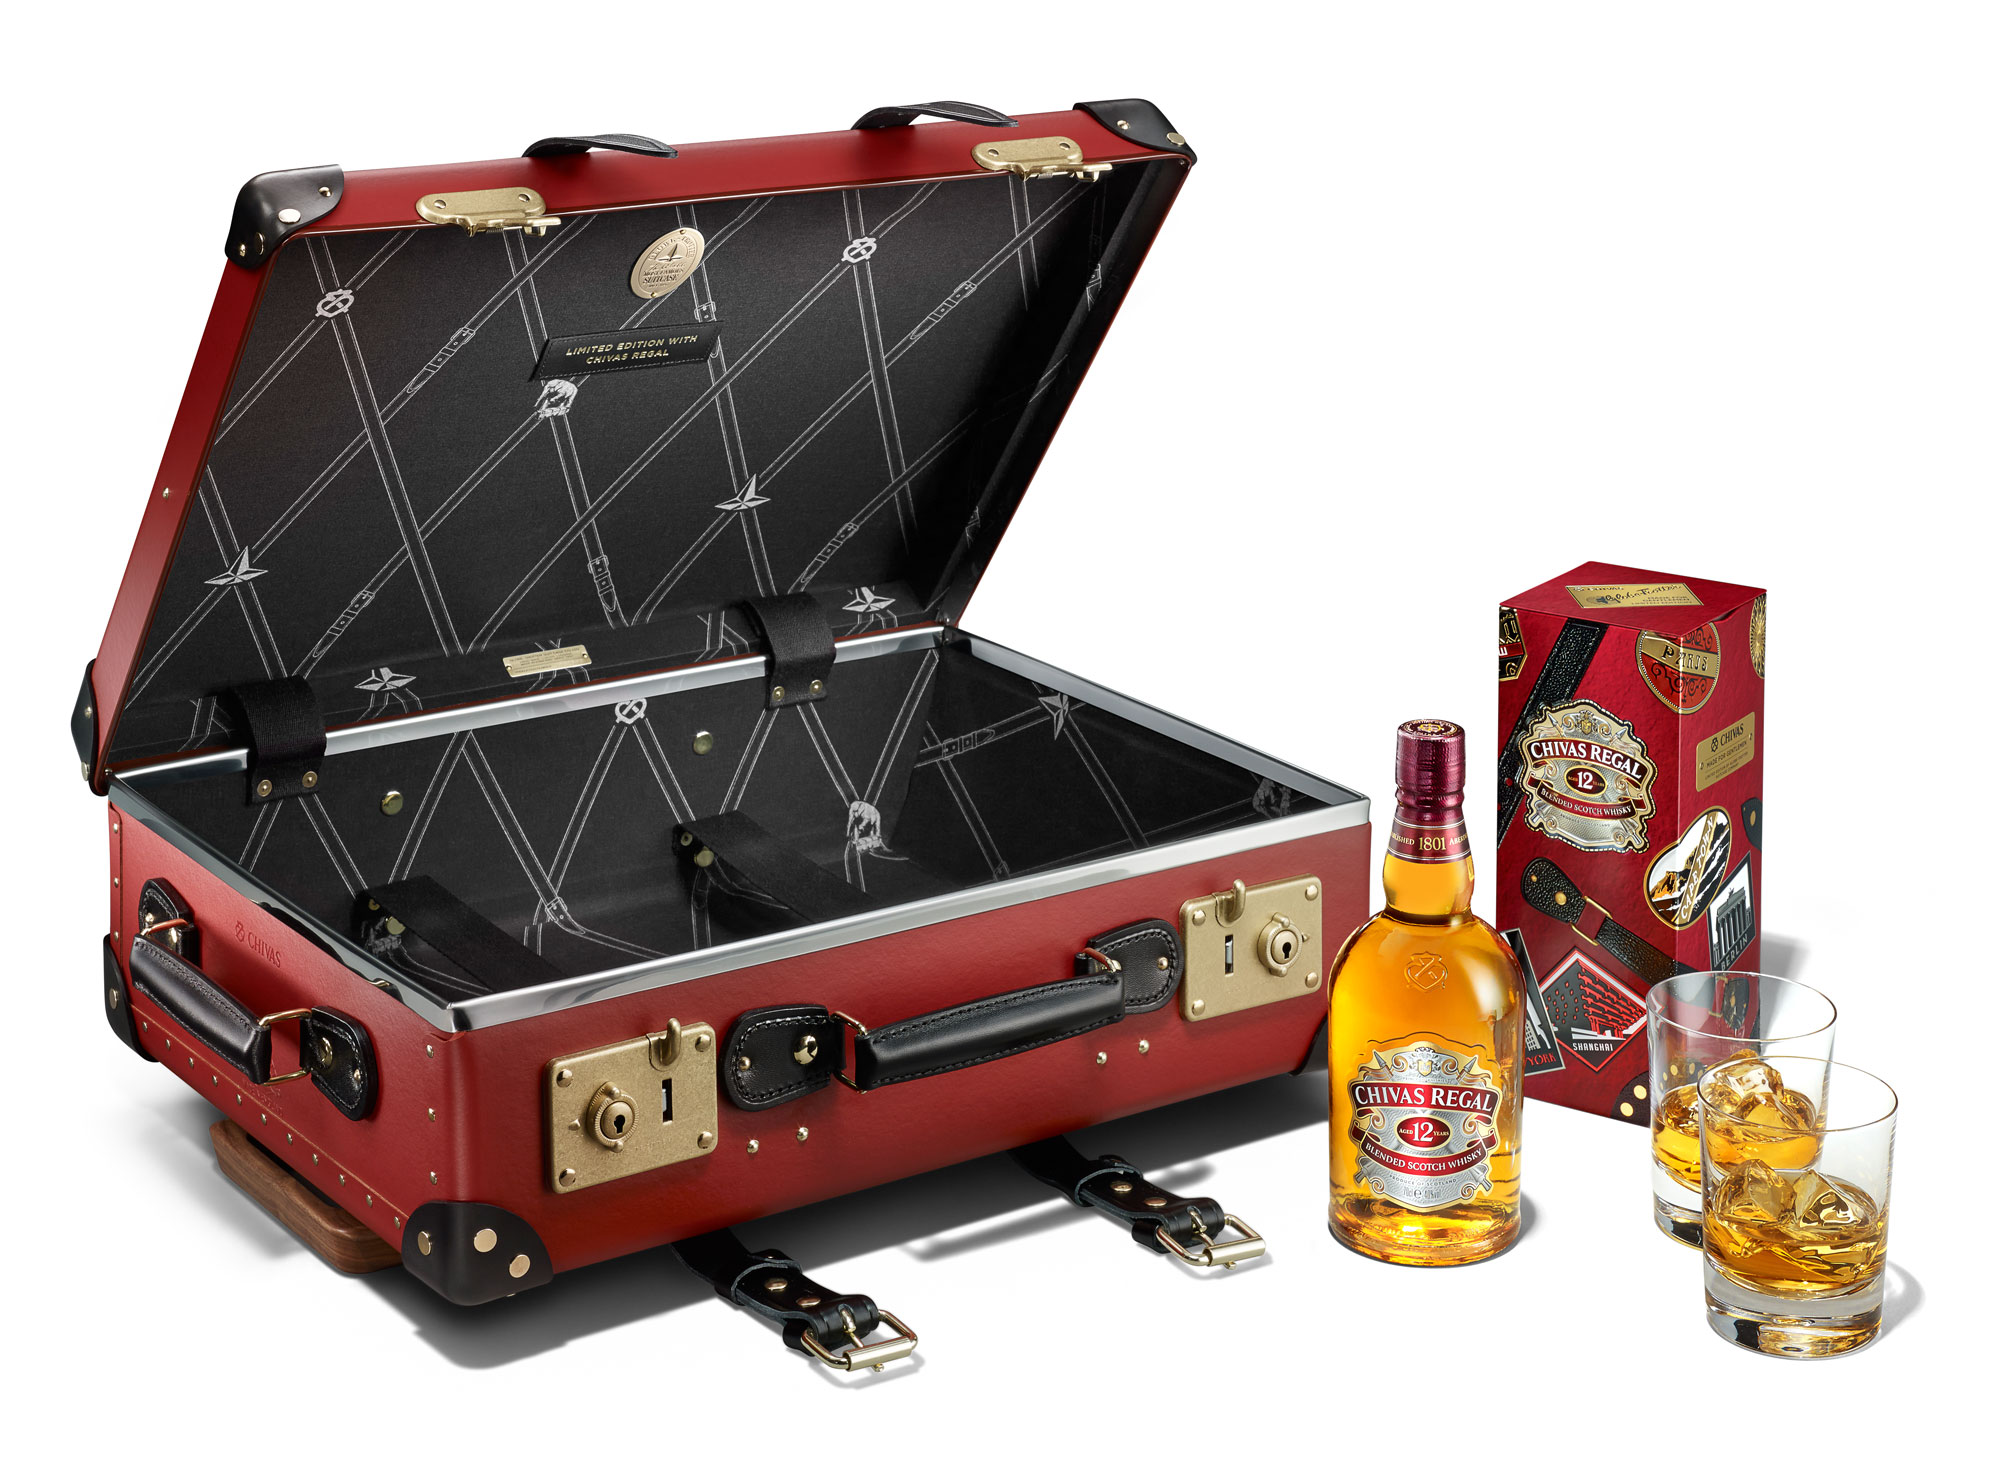 Chivas Regal 12 And Globe-Trotter Come Together For Limited Edition Collectibles